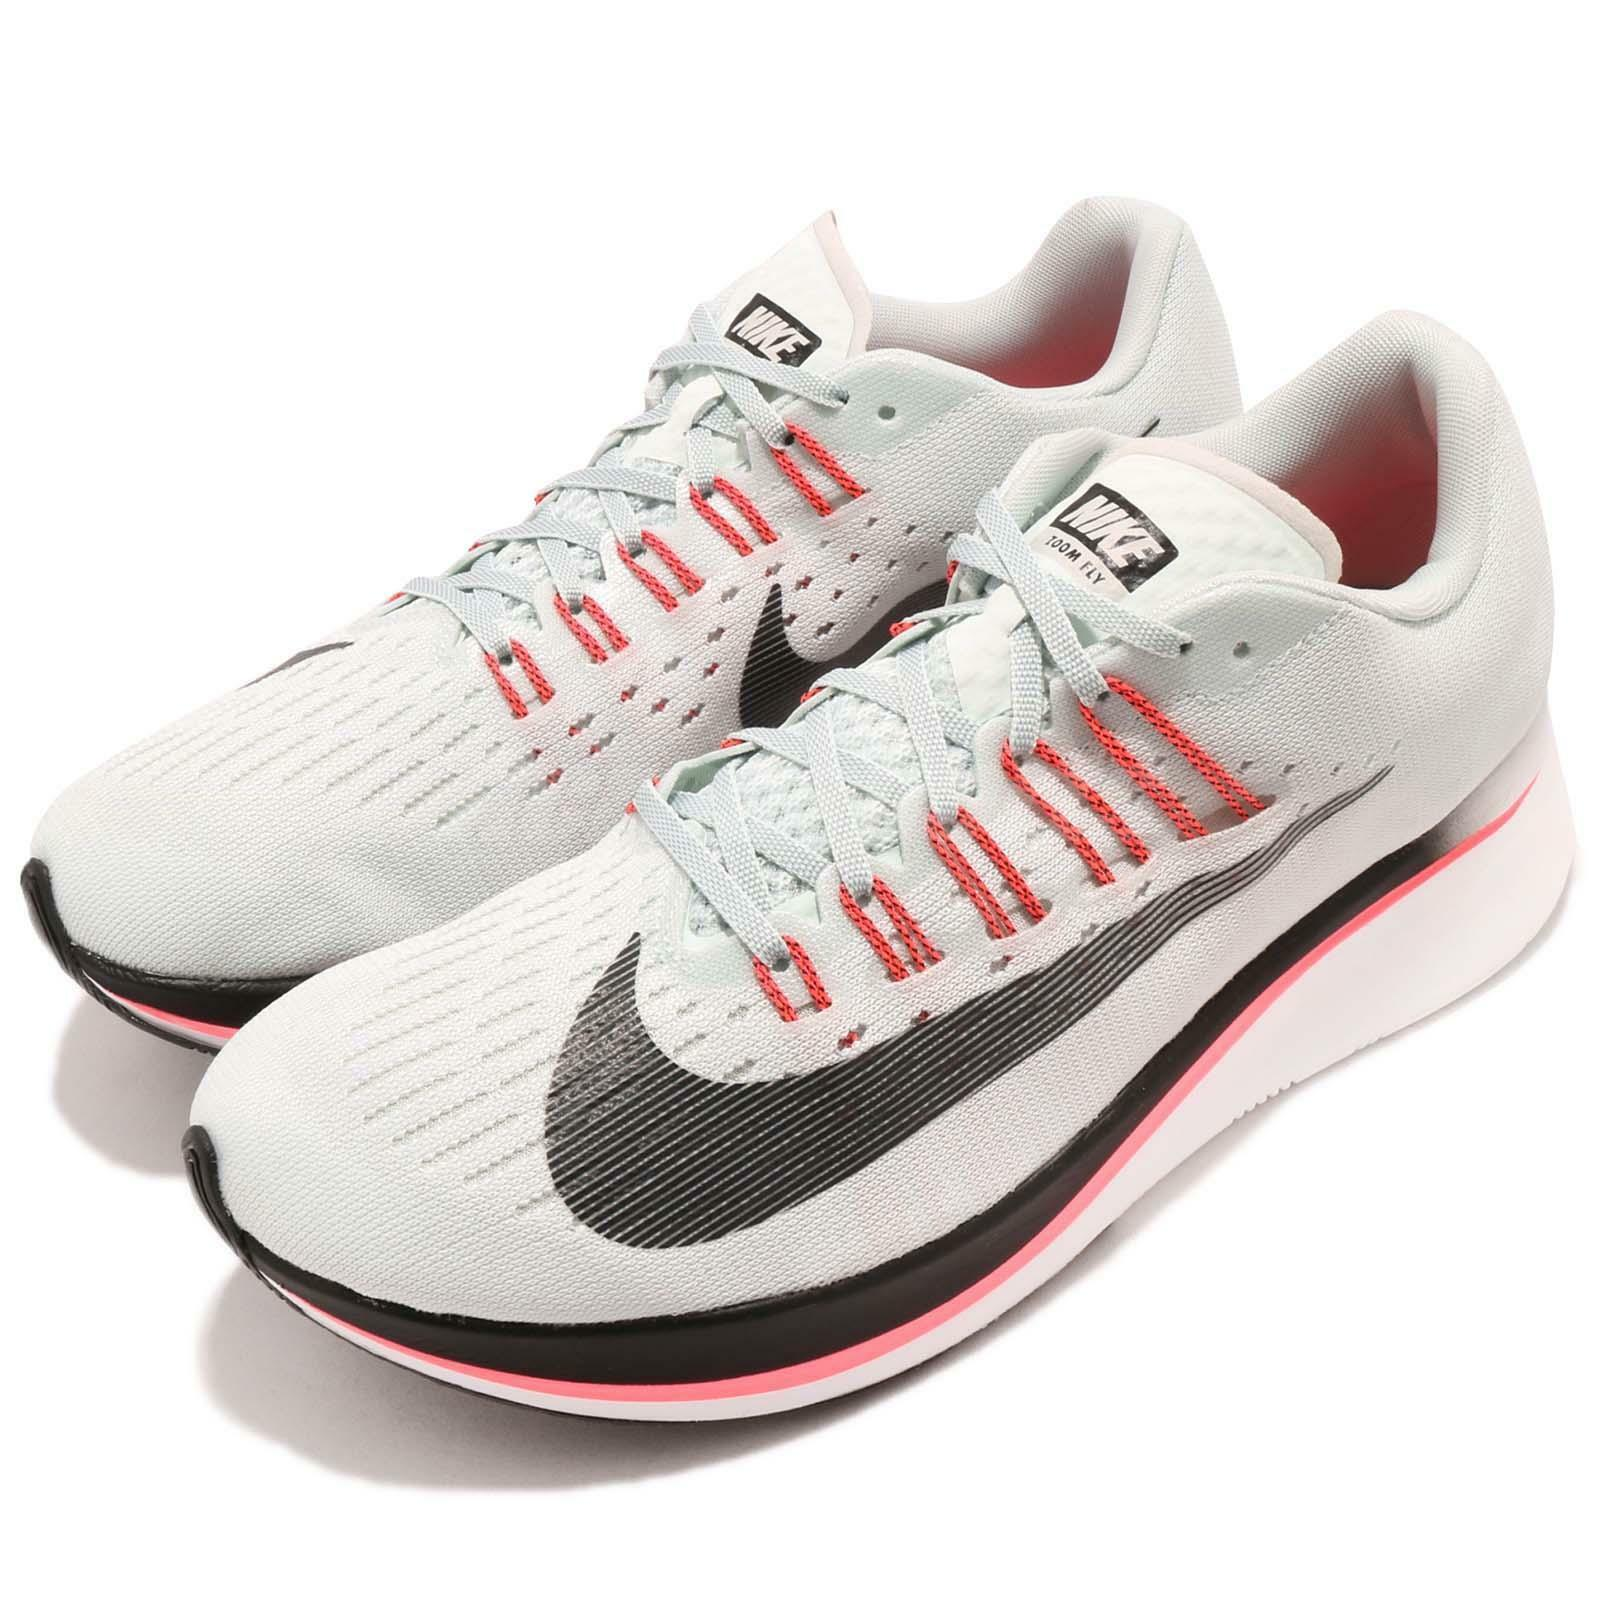 online store 52d1b 3e8b6 ... coupon for nike zoom fly barely gris zoom hot punch blanc homme  fonctionnement chaussures sneakers 880848